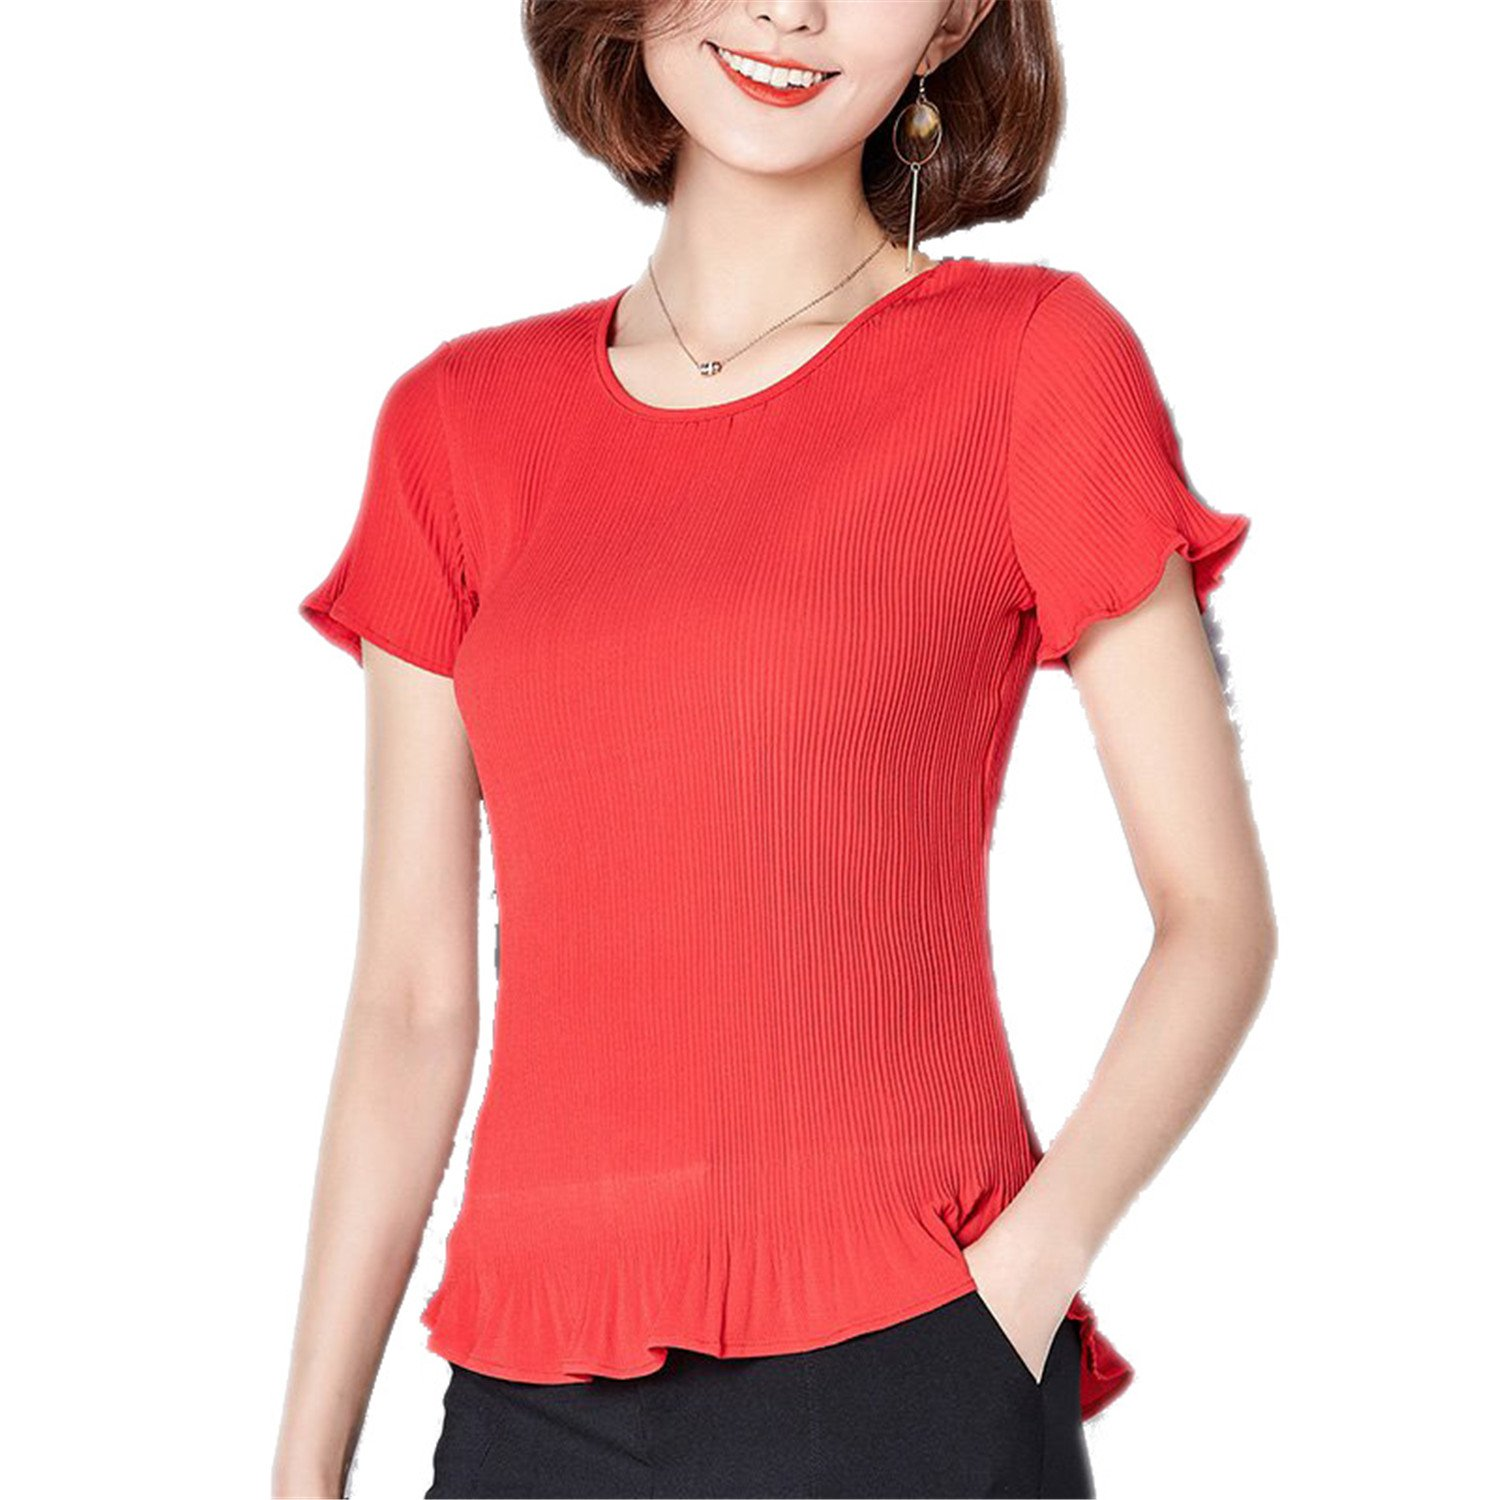 OUXIANGJU Summer Women Tops Pleated Polka Dot Shirts O-Neck Short Sleeve Chiffon Blouses Big Sizes at Amazon Womens Clothing store: